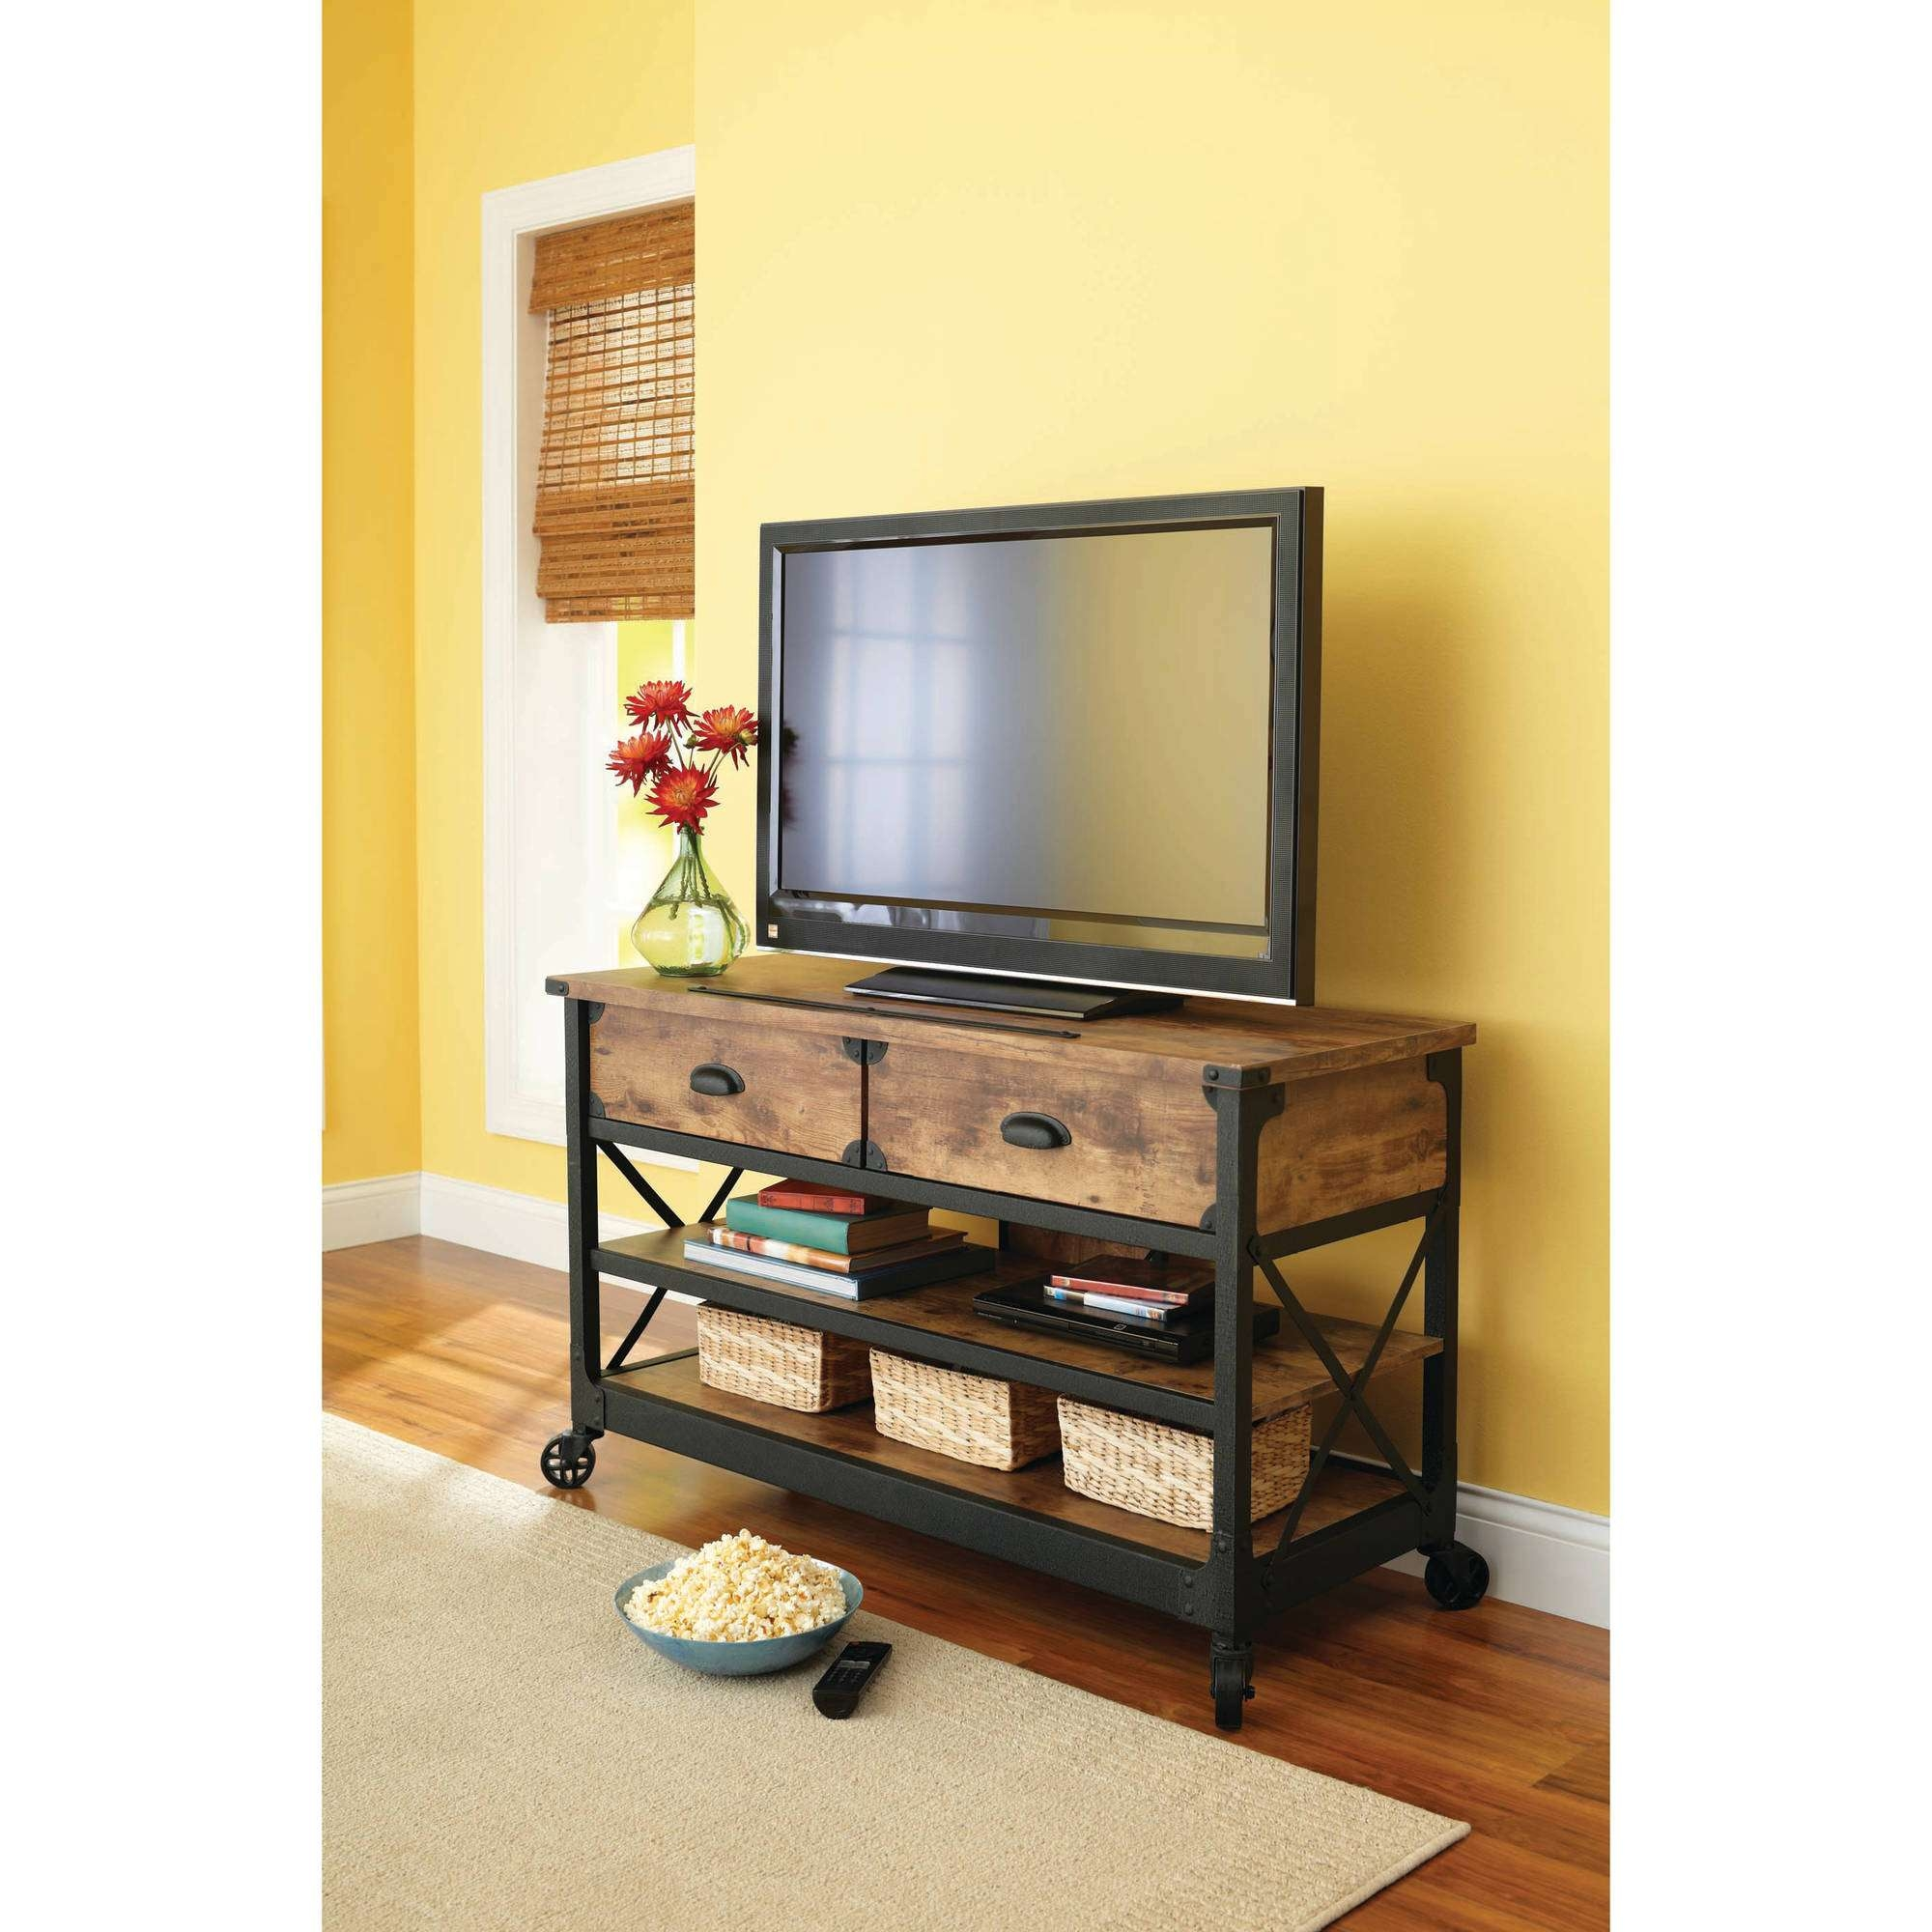 Catchy collections of better homes tv stand fabulous for Home and garden tv design 101